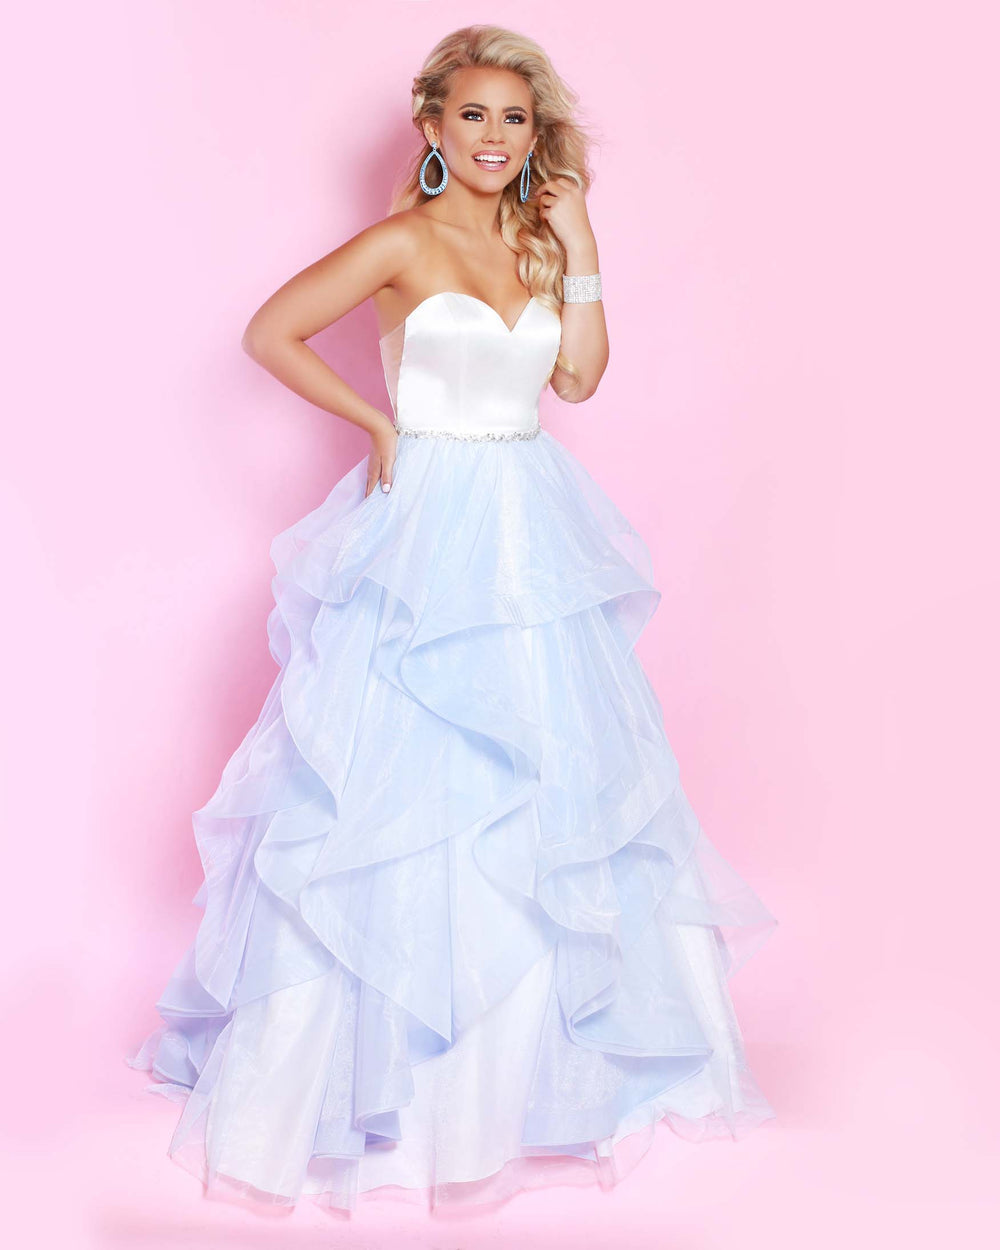 2Cute 91553 Long Strapless Prom Dress